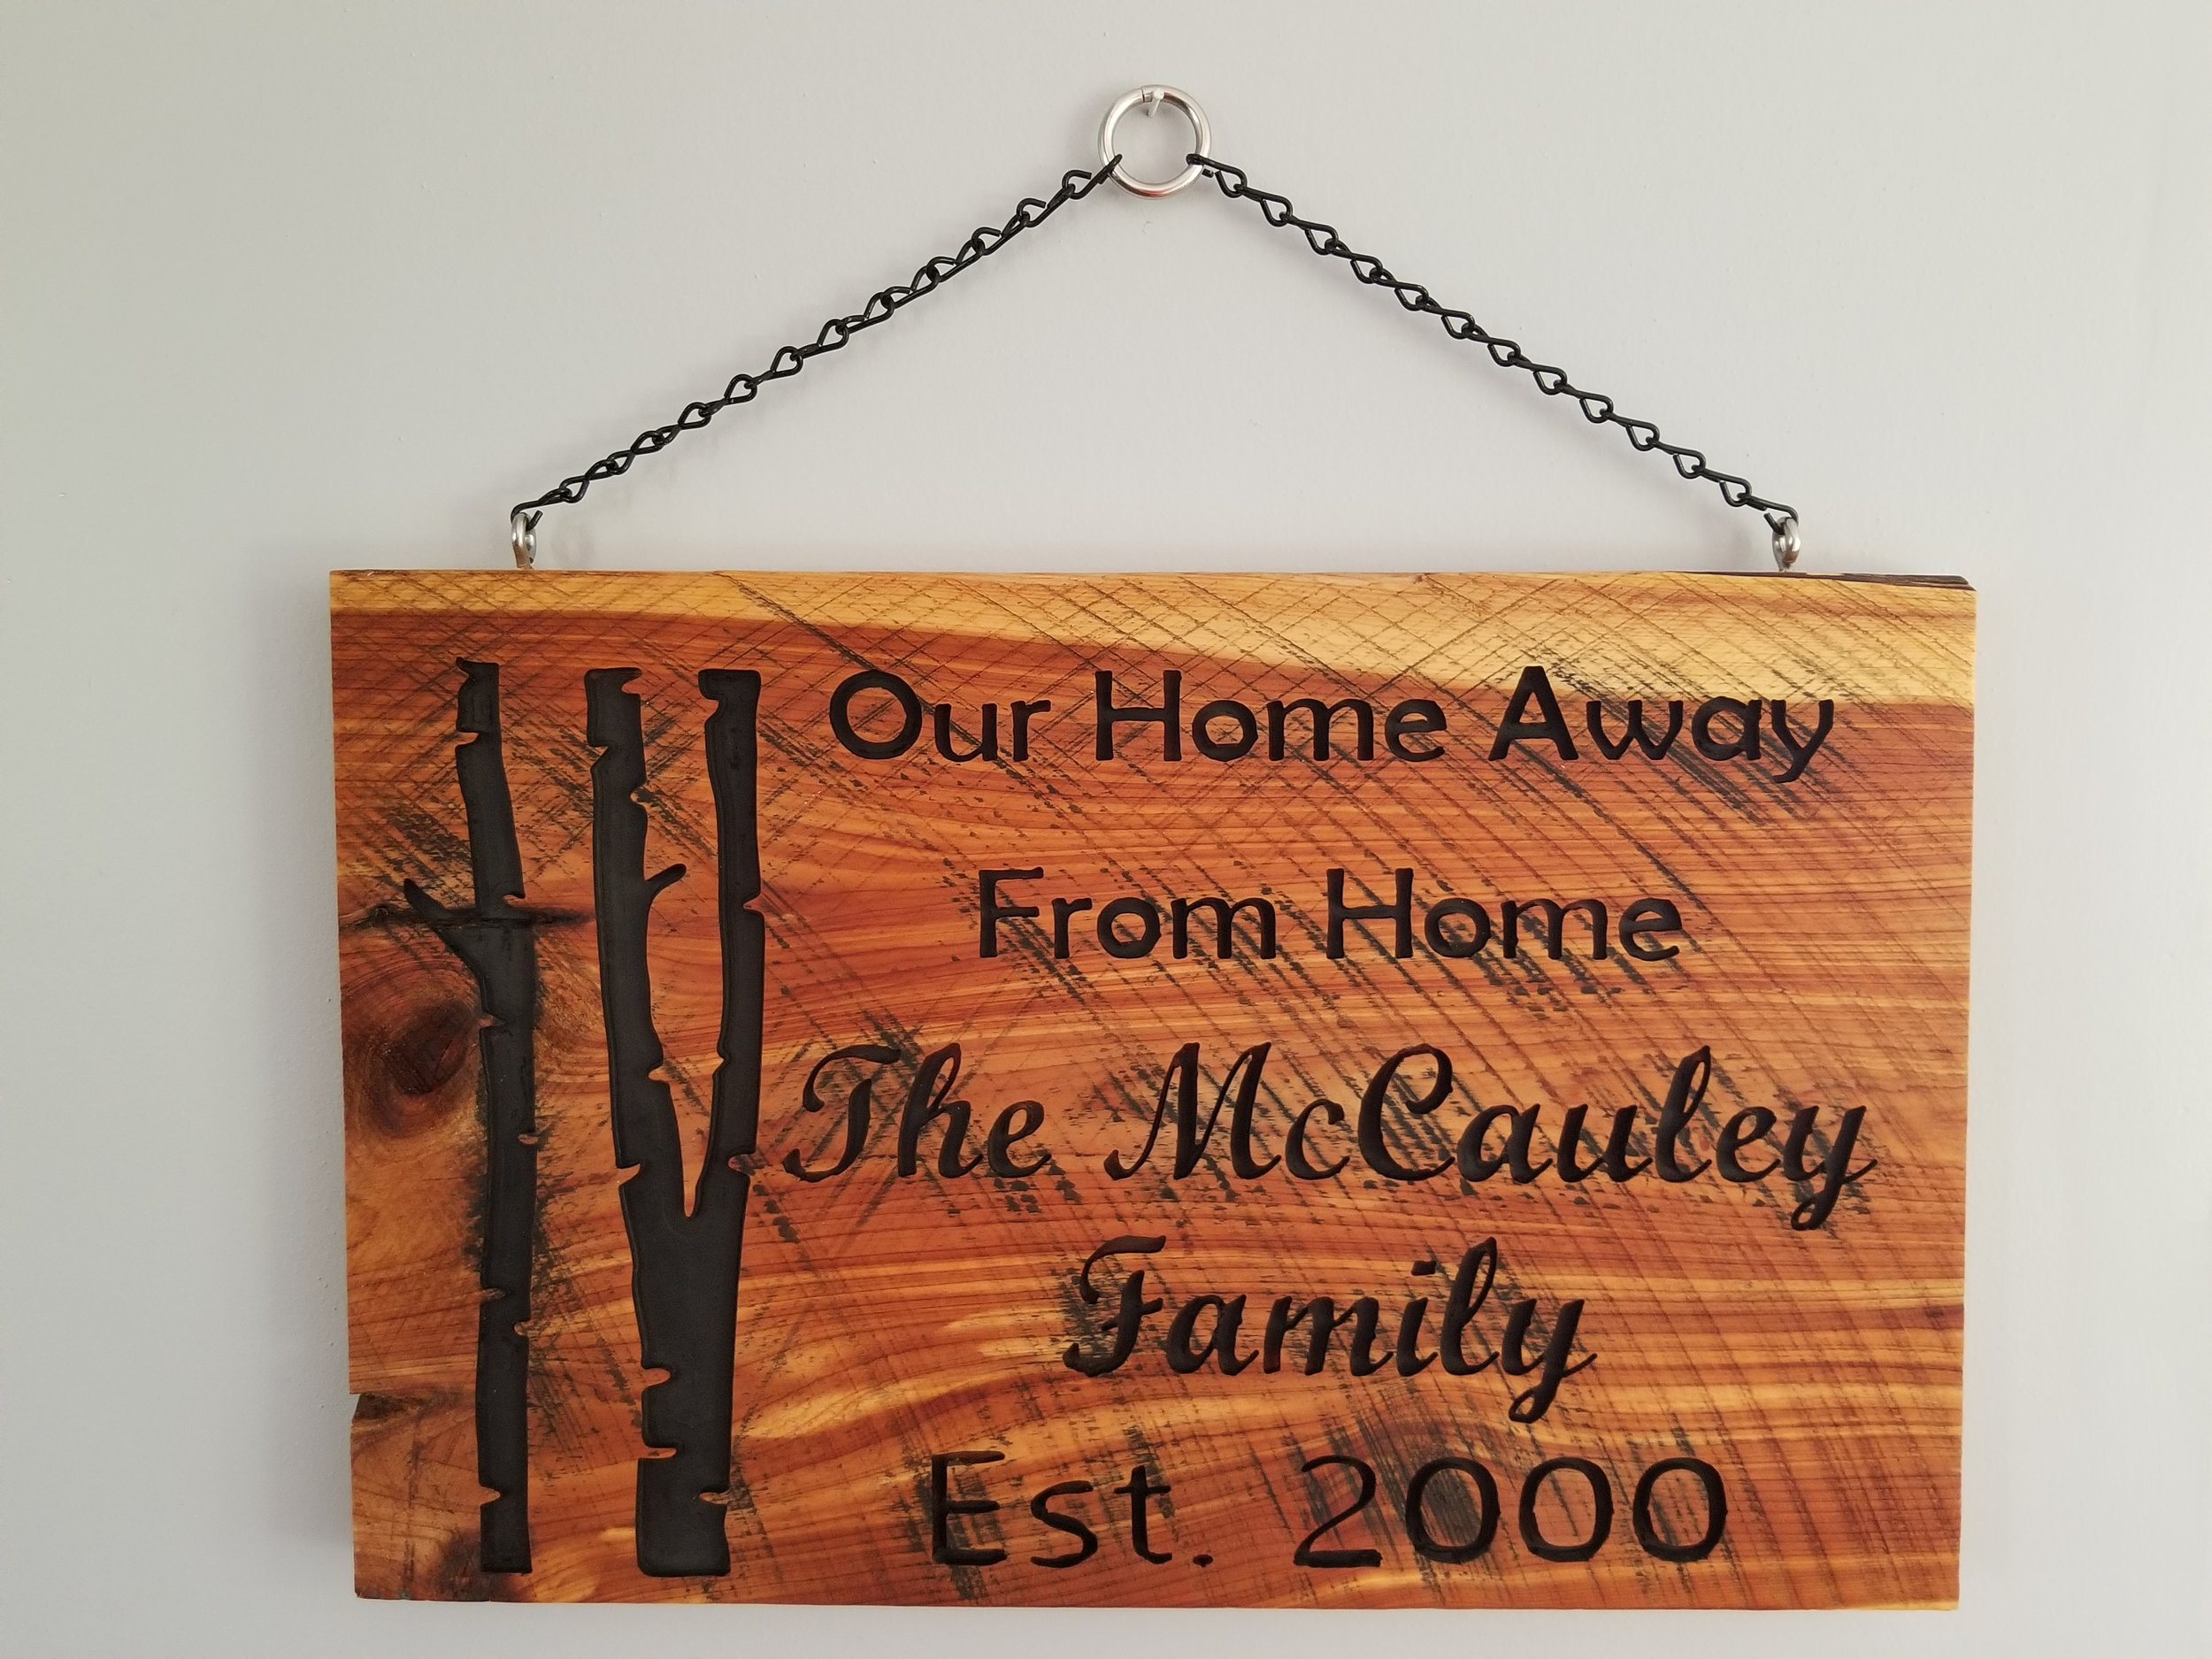 Mccand mothers day sign.jpg